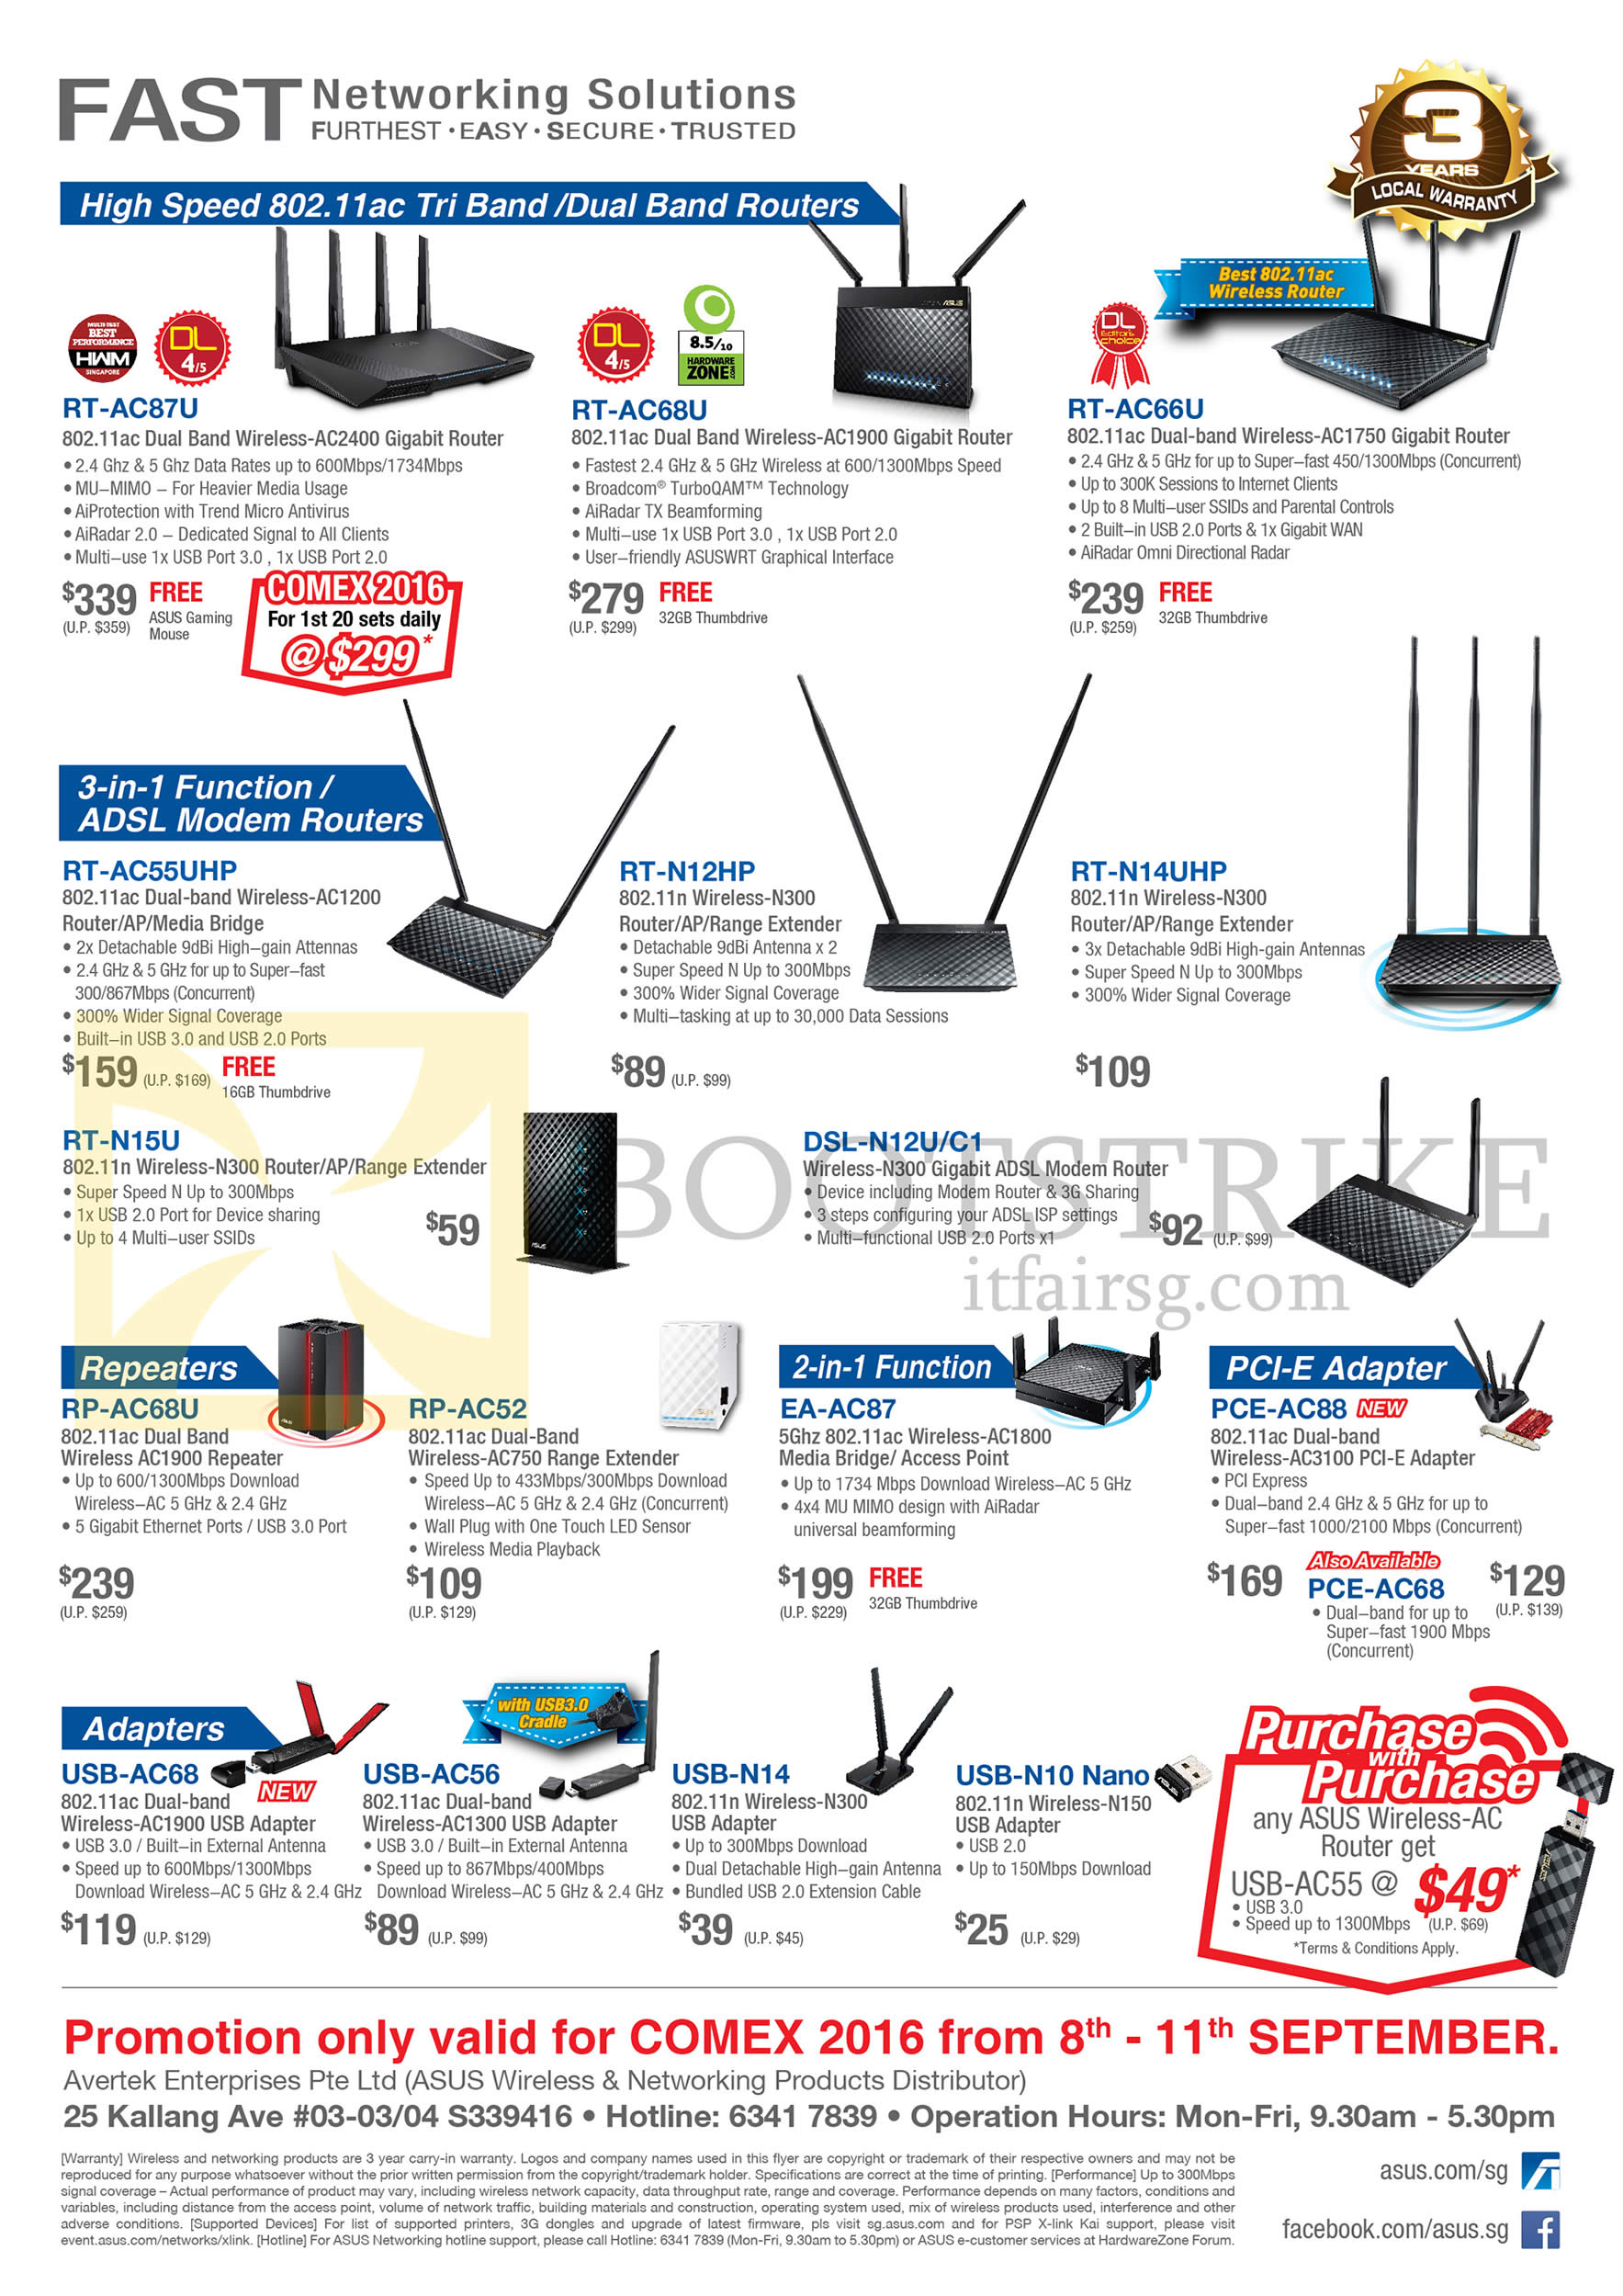 COMEX 2016 price list image brochure of ASUS Networking Routers, Adapters, Repeaters, RT-AC87U AC68U AC66U N14UHP N12HP AC55UHP N15U, DSL-N12U C1, RP-AC68U AC52, EA-AC87, PCE-AC88 AC68, USB-N10, N14, AC56 AC68